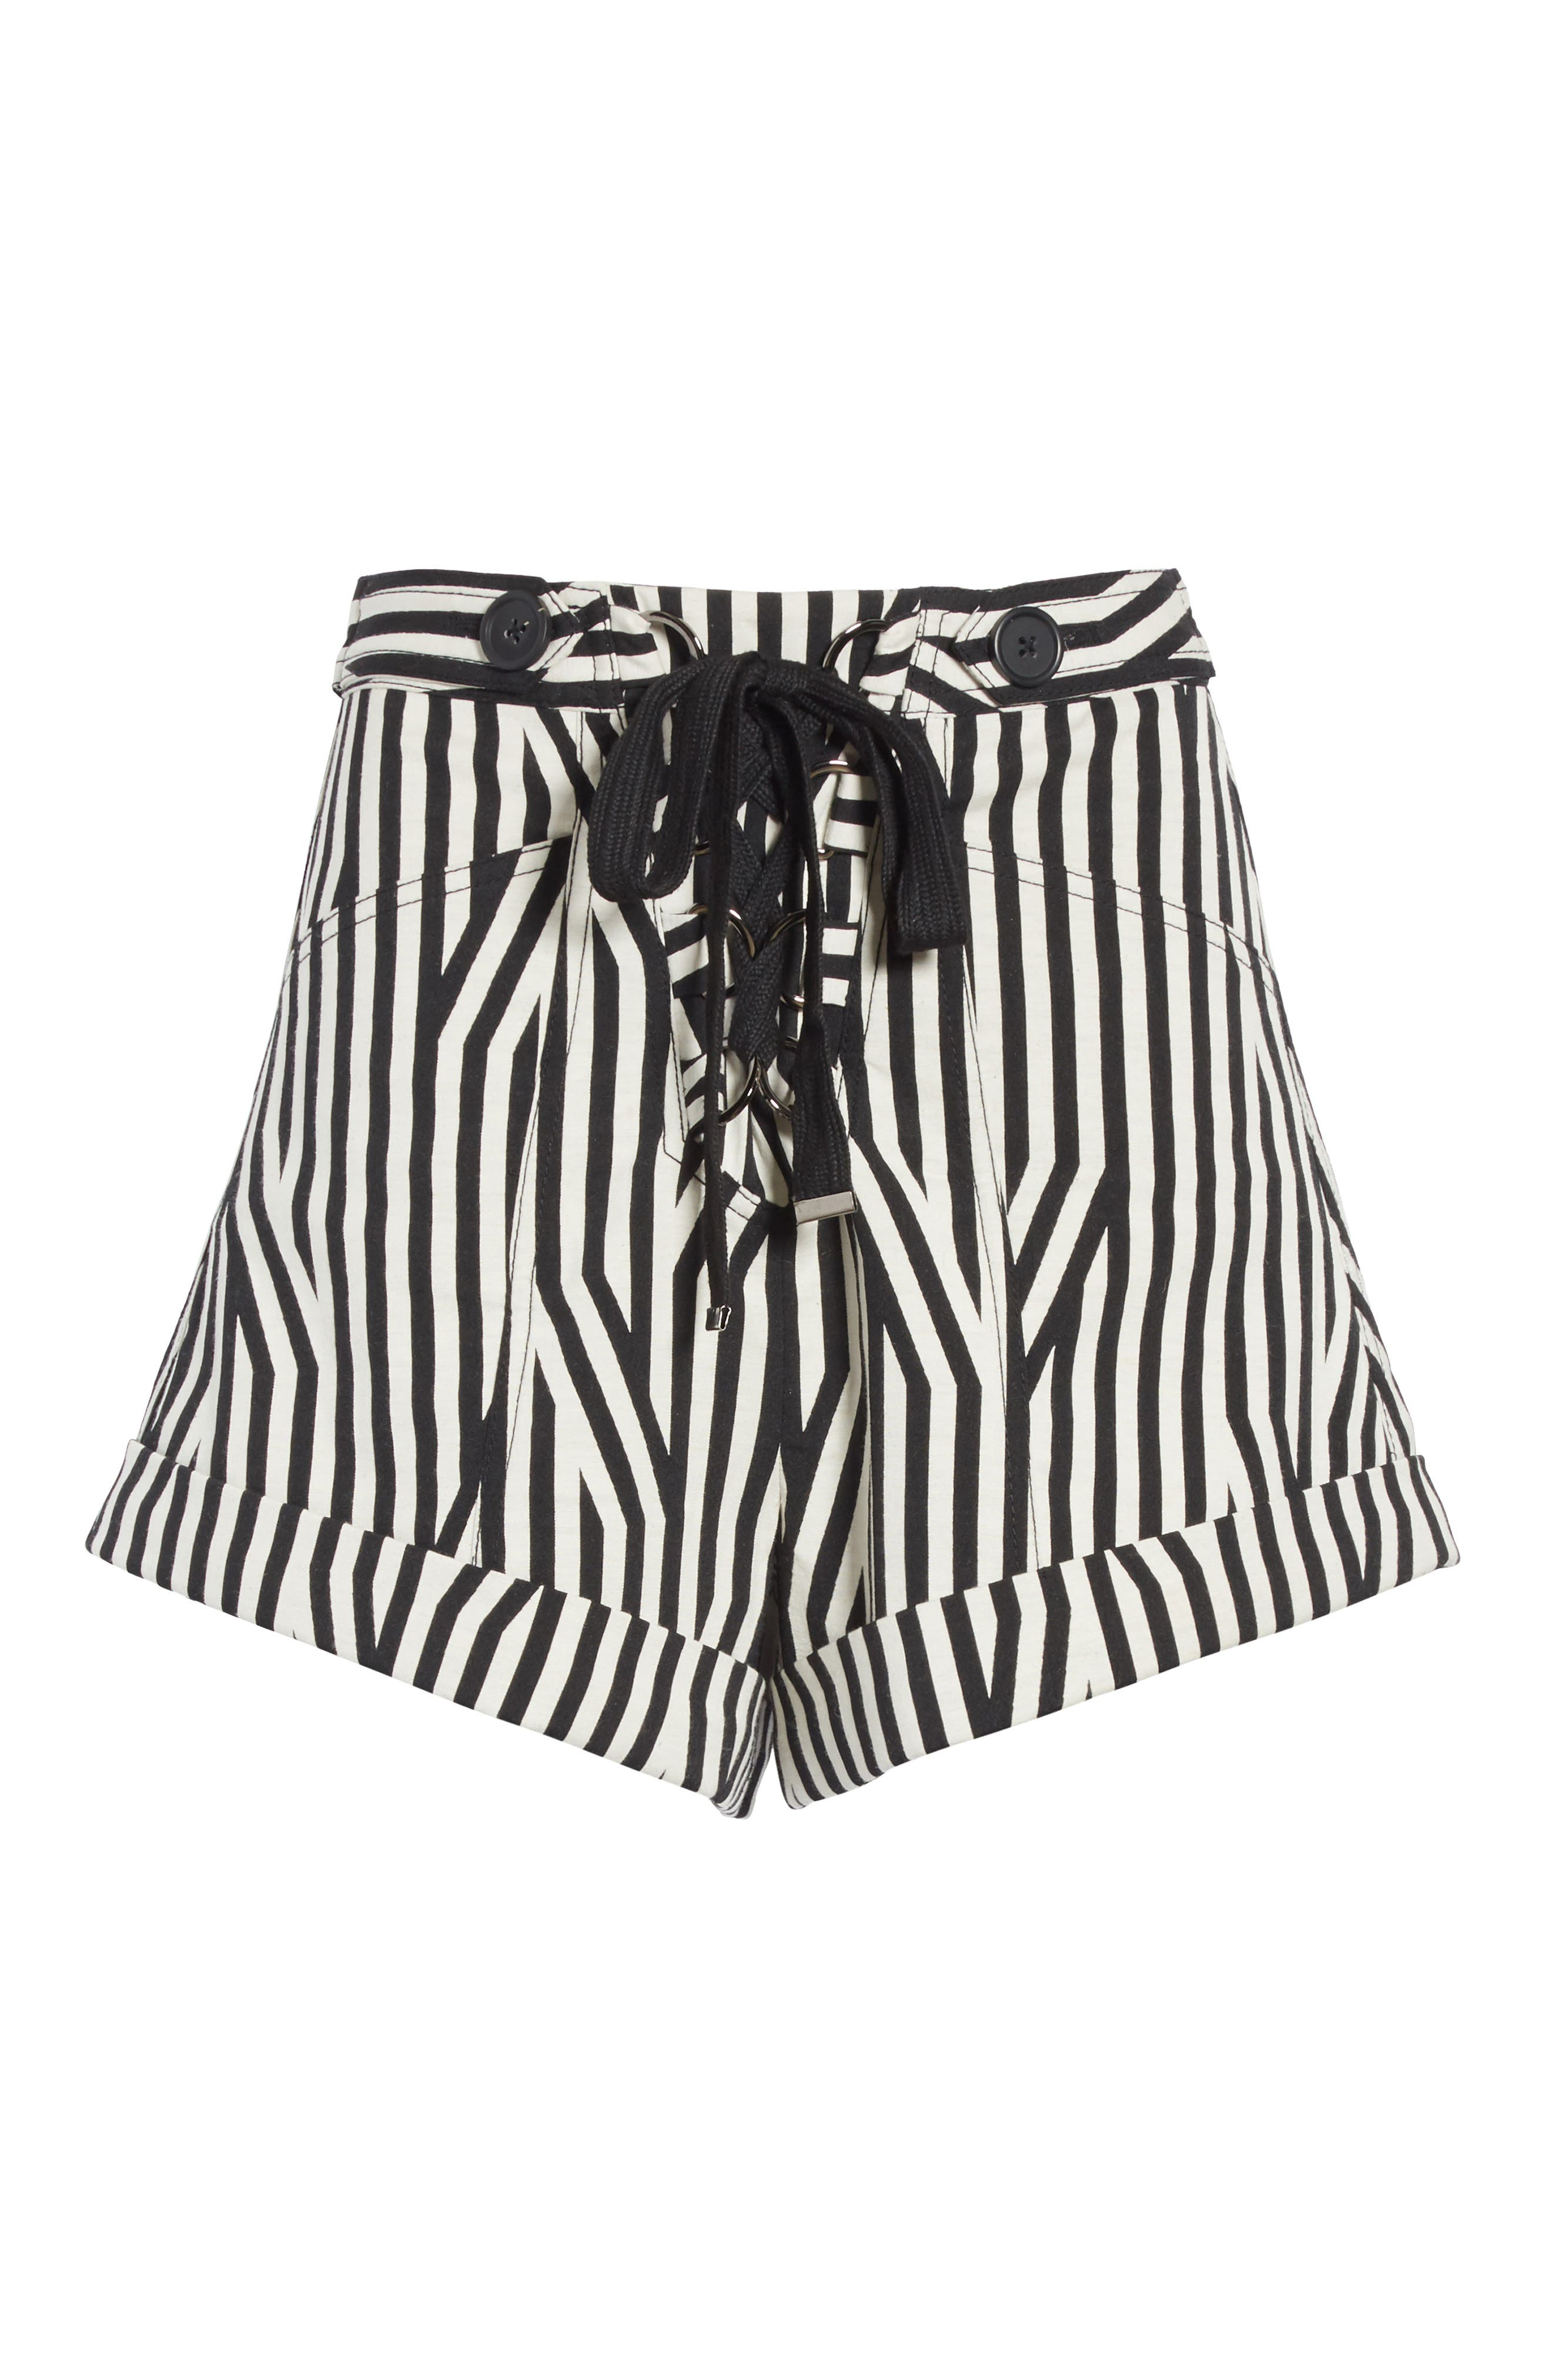 Abstract Stripe Lace-Up Shorts,                             Alternate thumbnail 6, color,                             Black/ White